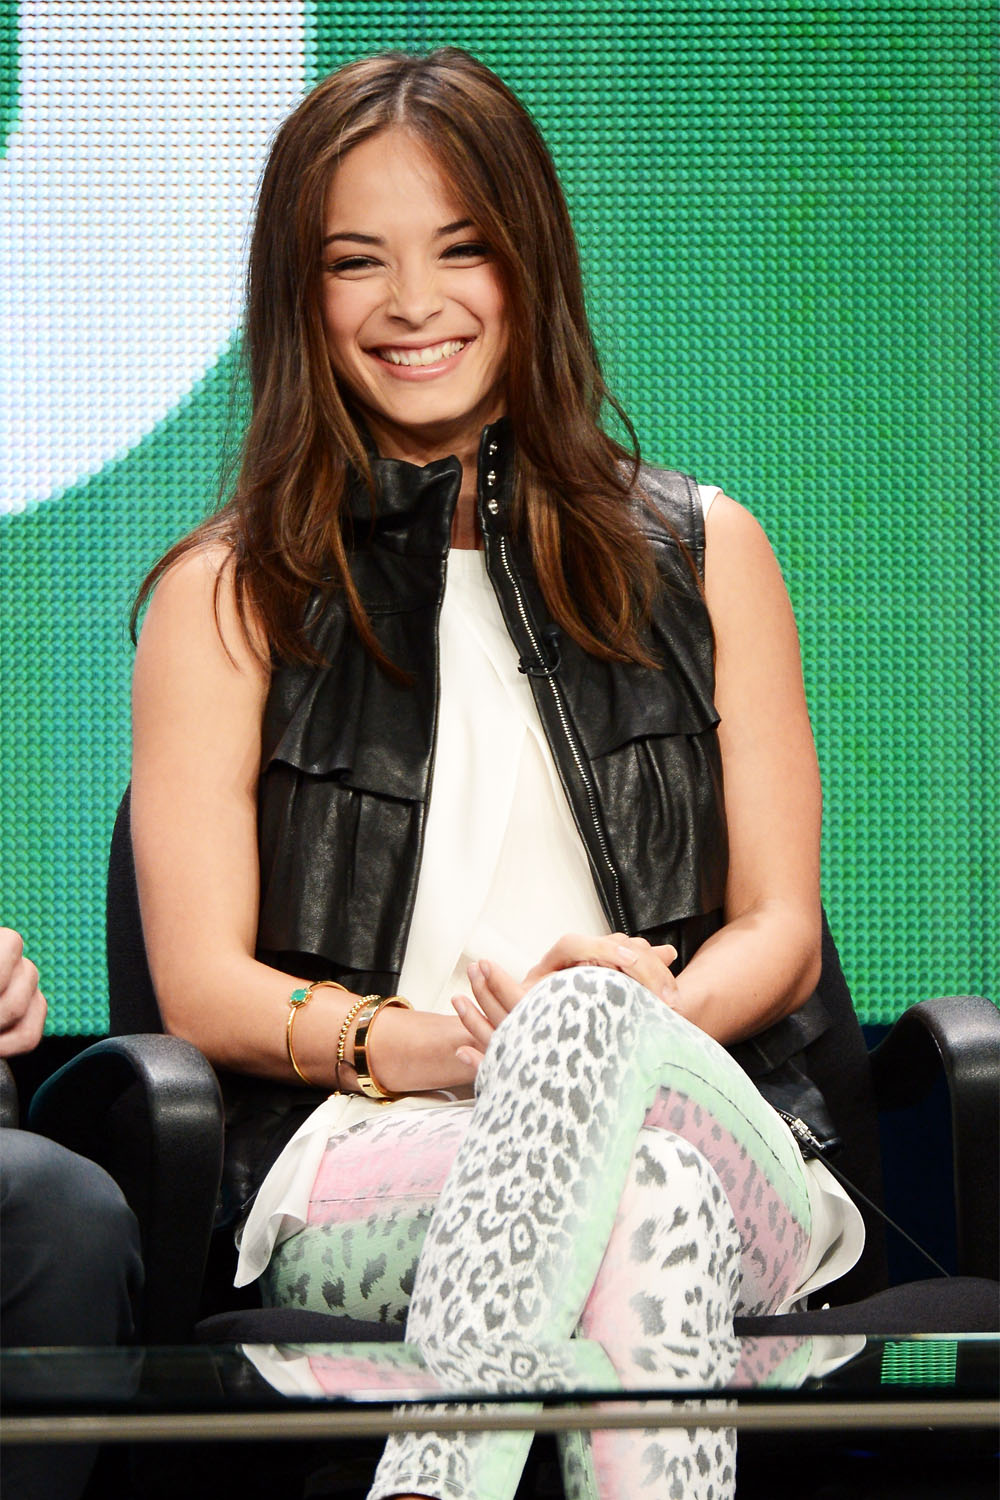 Kristin Kreuk at Beauty & The Beast panel